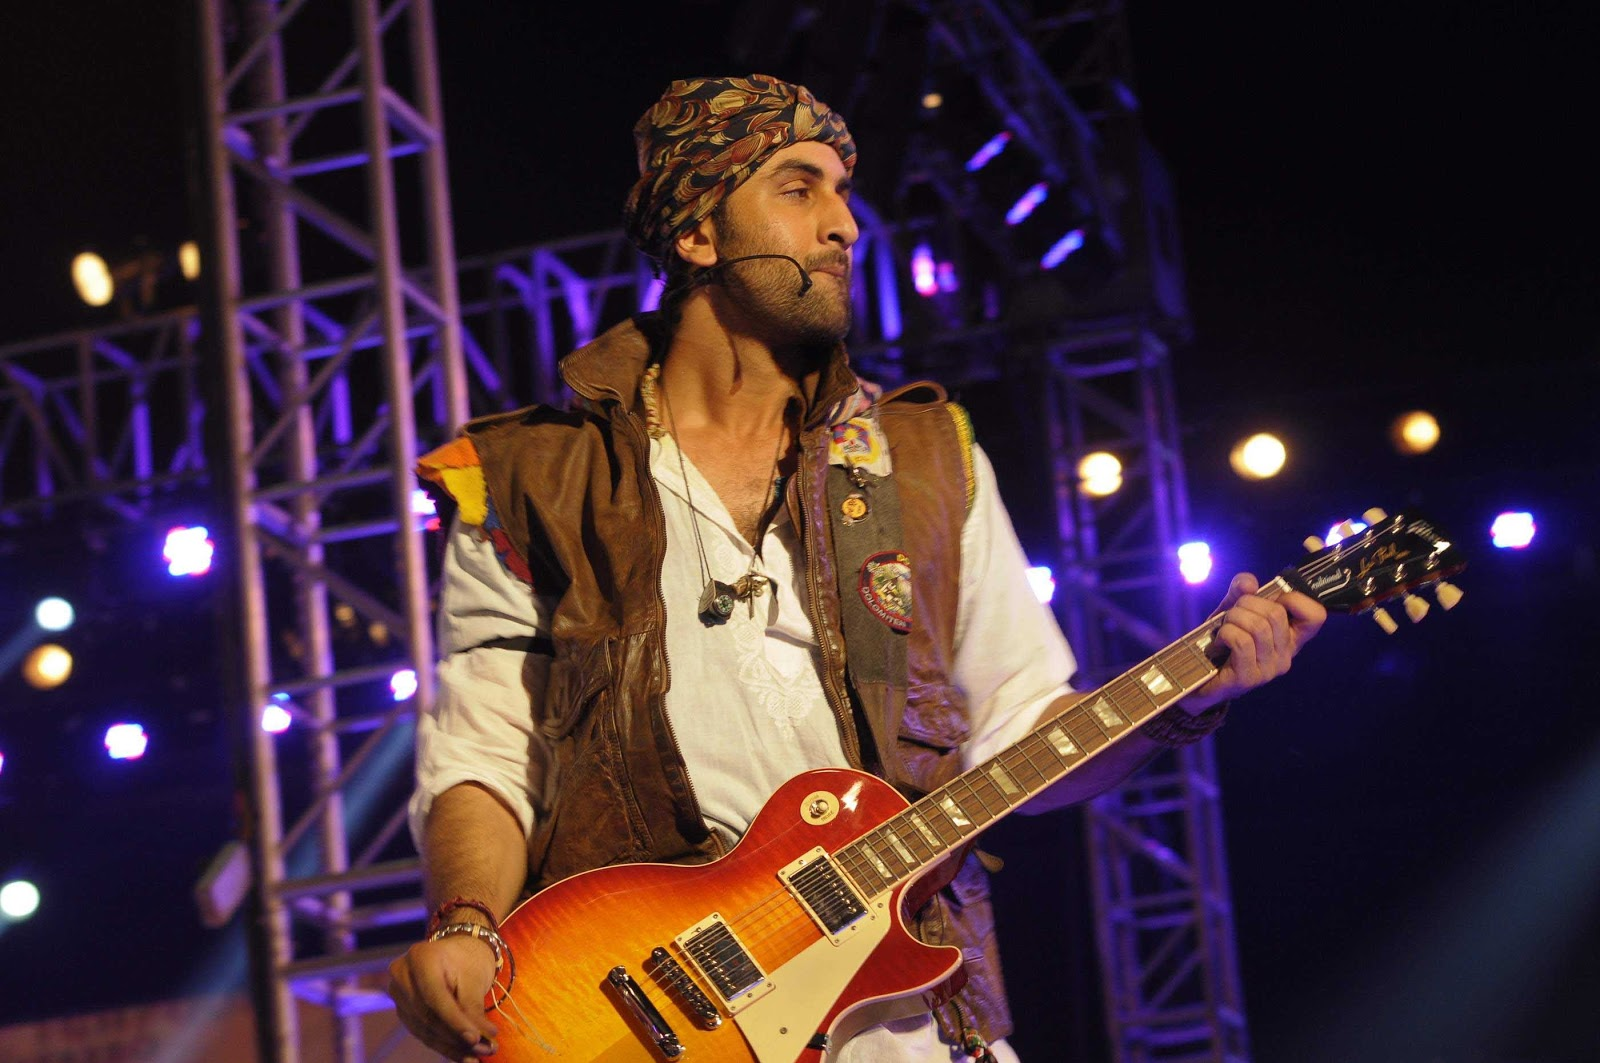 ranbir kapoor in and as rockstar hd wallpapers high definition